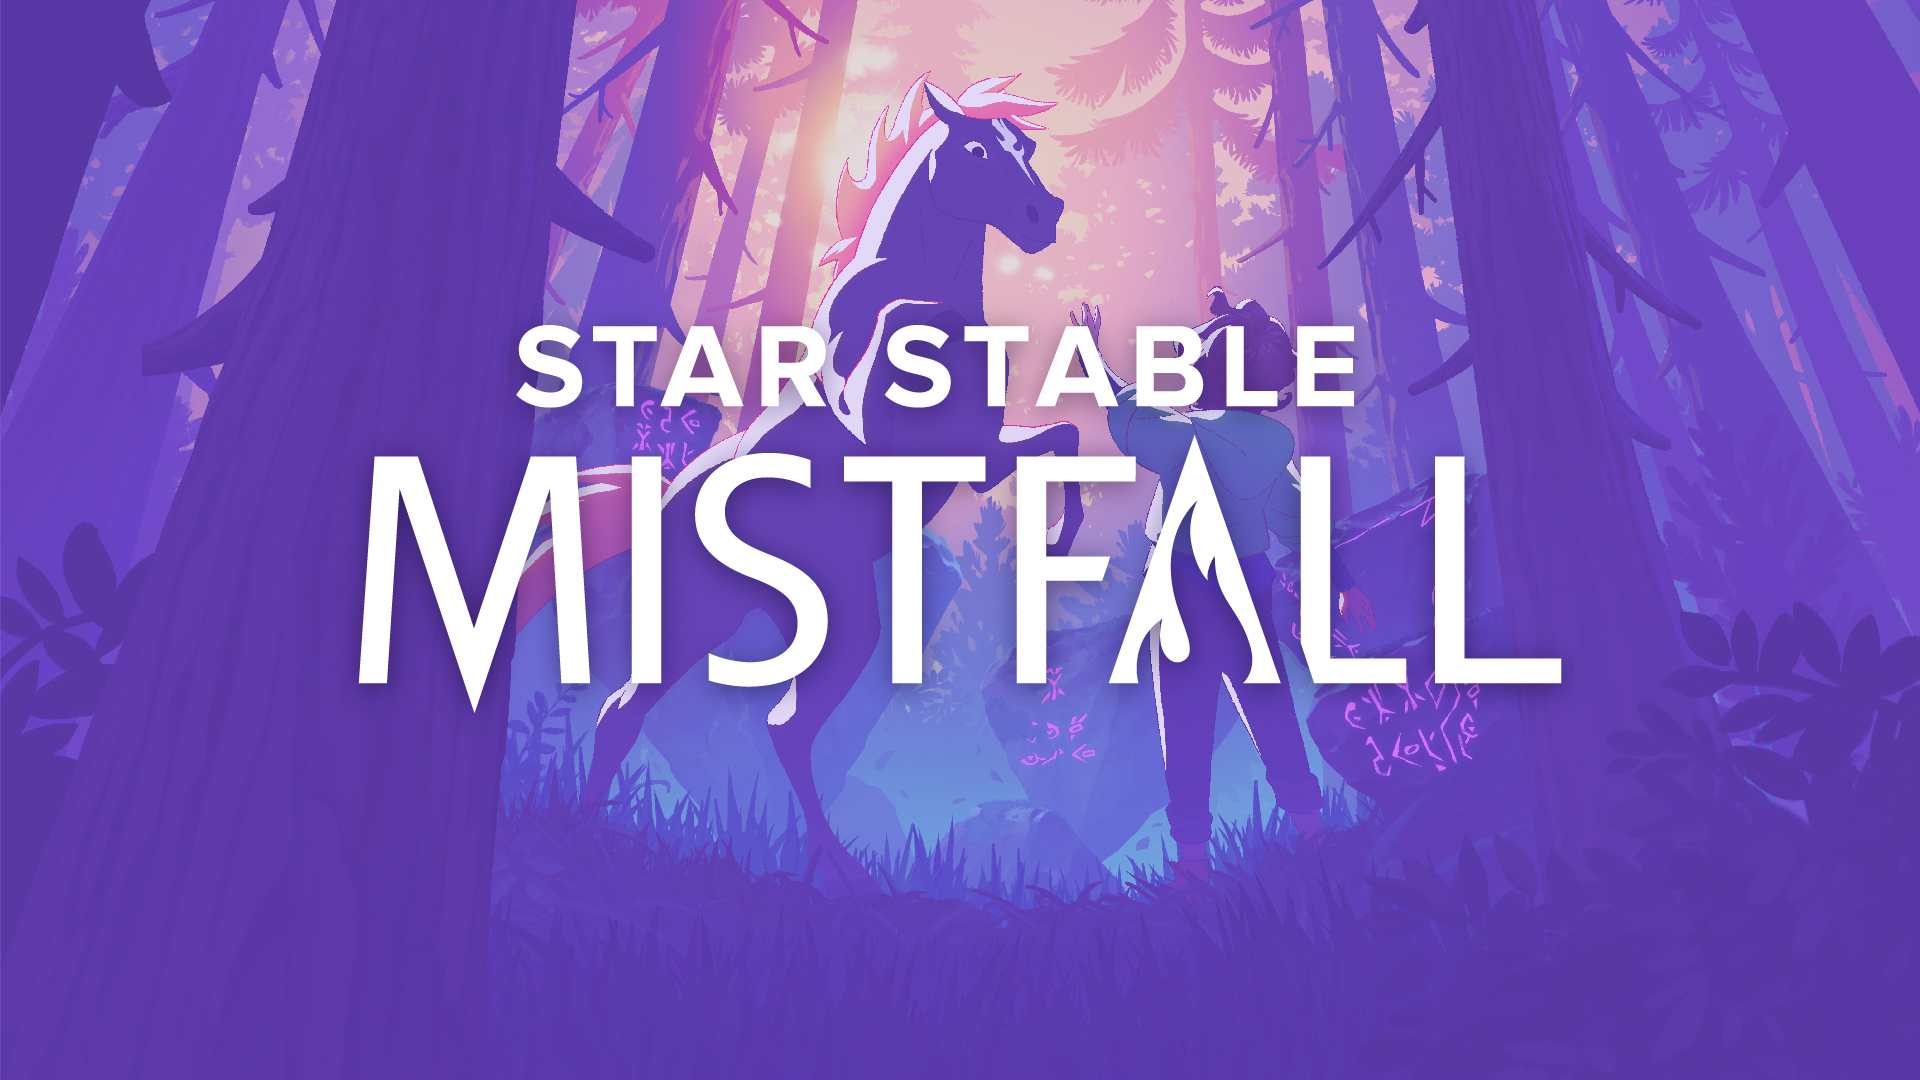 Watch Star Stable: Mistfall here!